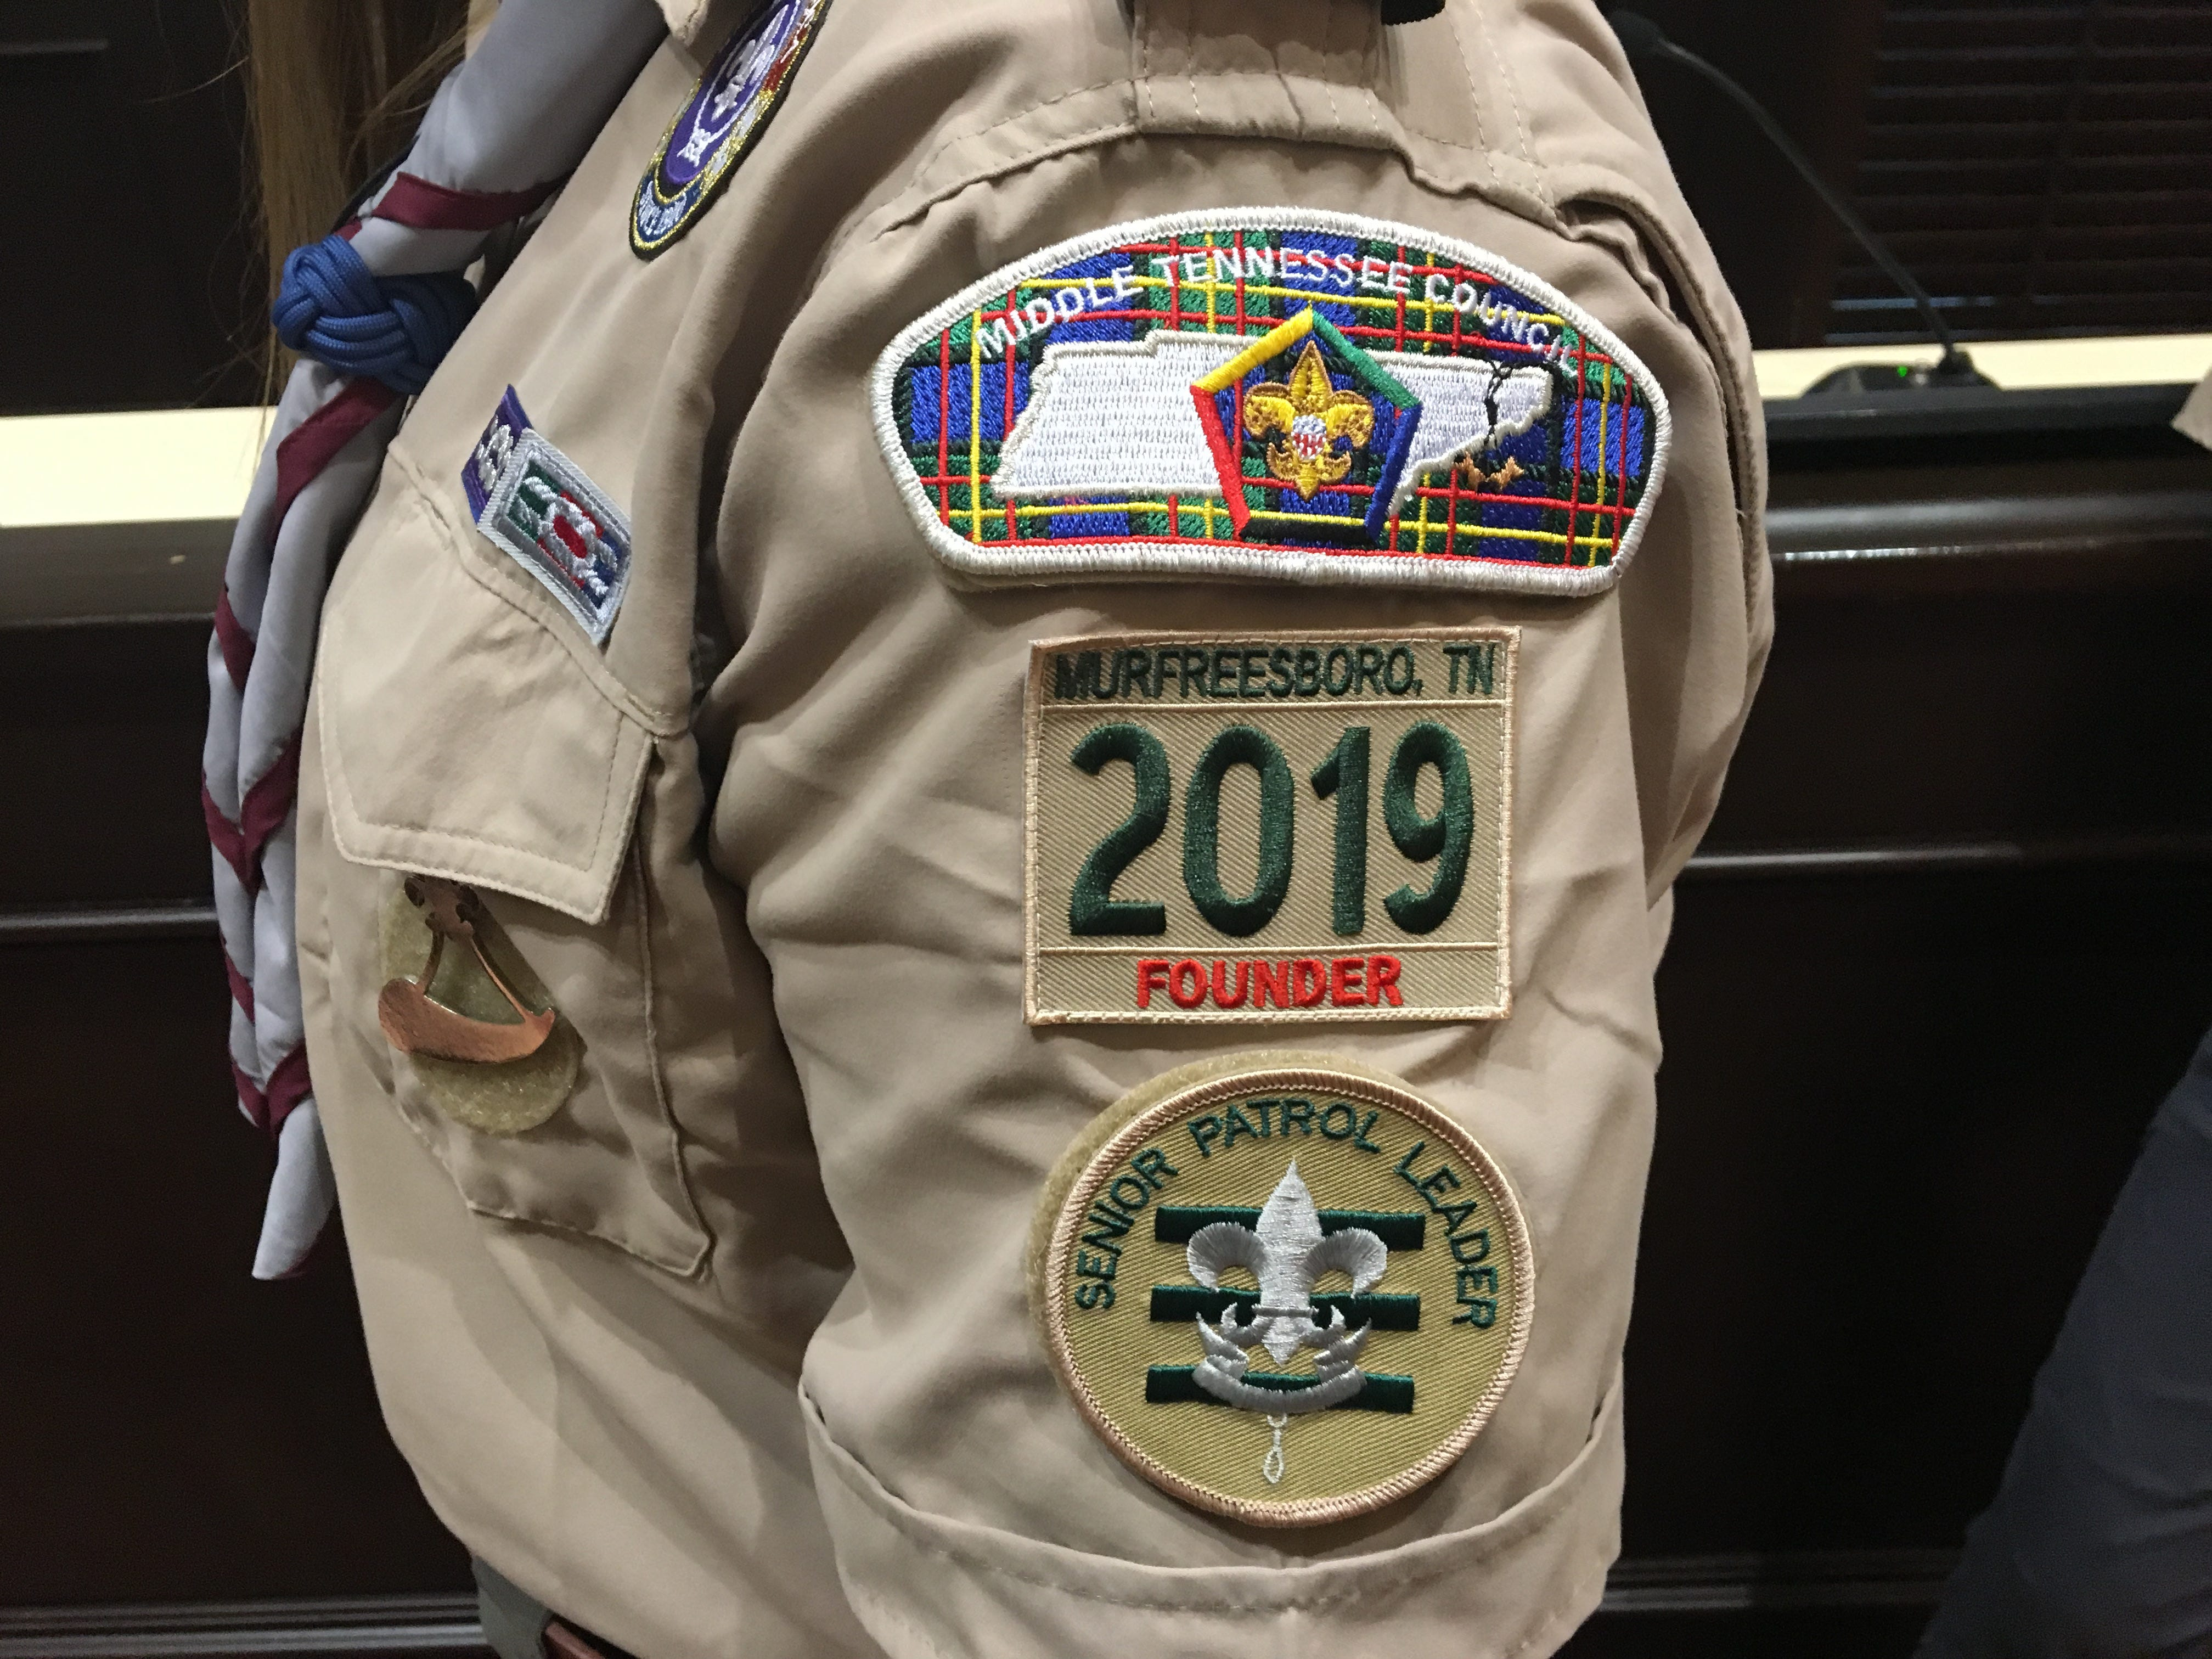 Middle Tennessee Council of Boy Scouts of America welcome the all-girl Troop 2019, and rebranded as Scouts BSA.